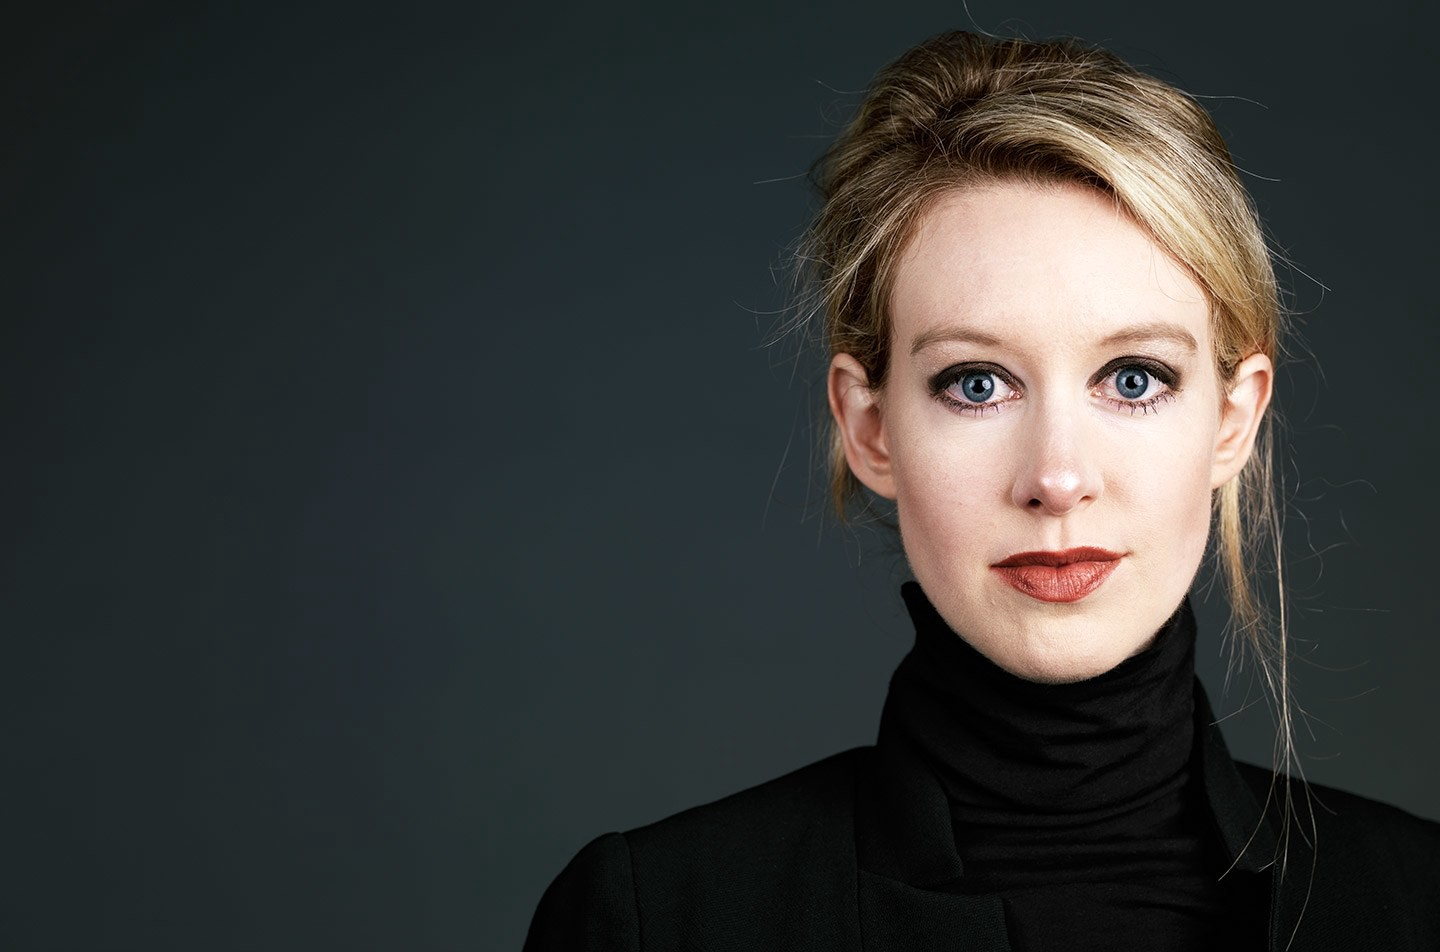 Elizabeth Holmes trial: Walgreens paid $100 million to Theranos, invested $40 million more: 'I didn't want to believe that the things I believed weren't true'